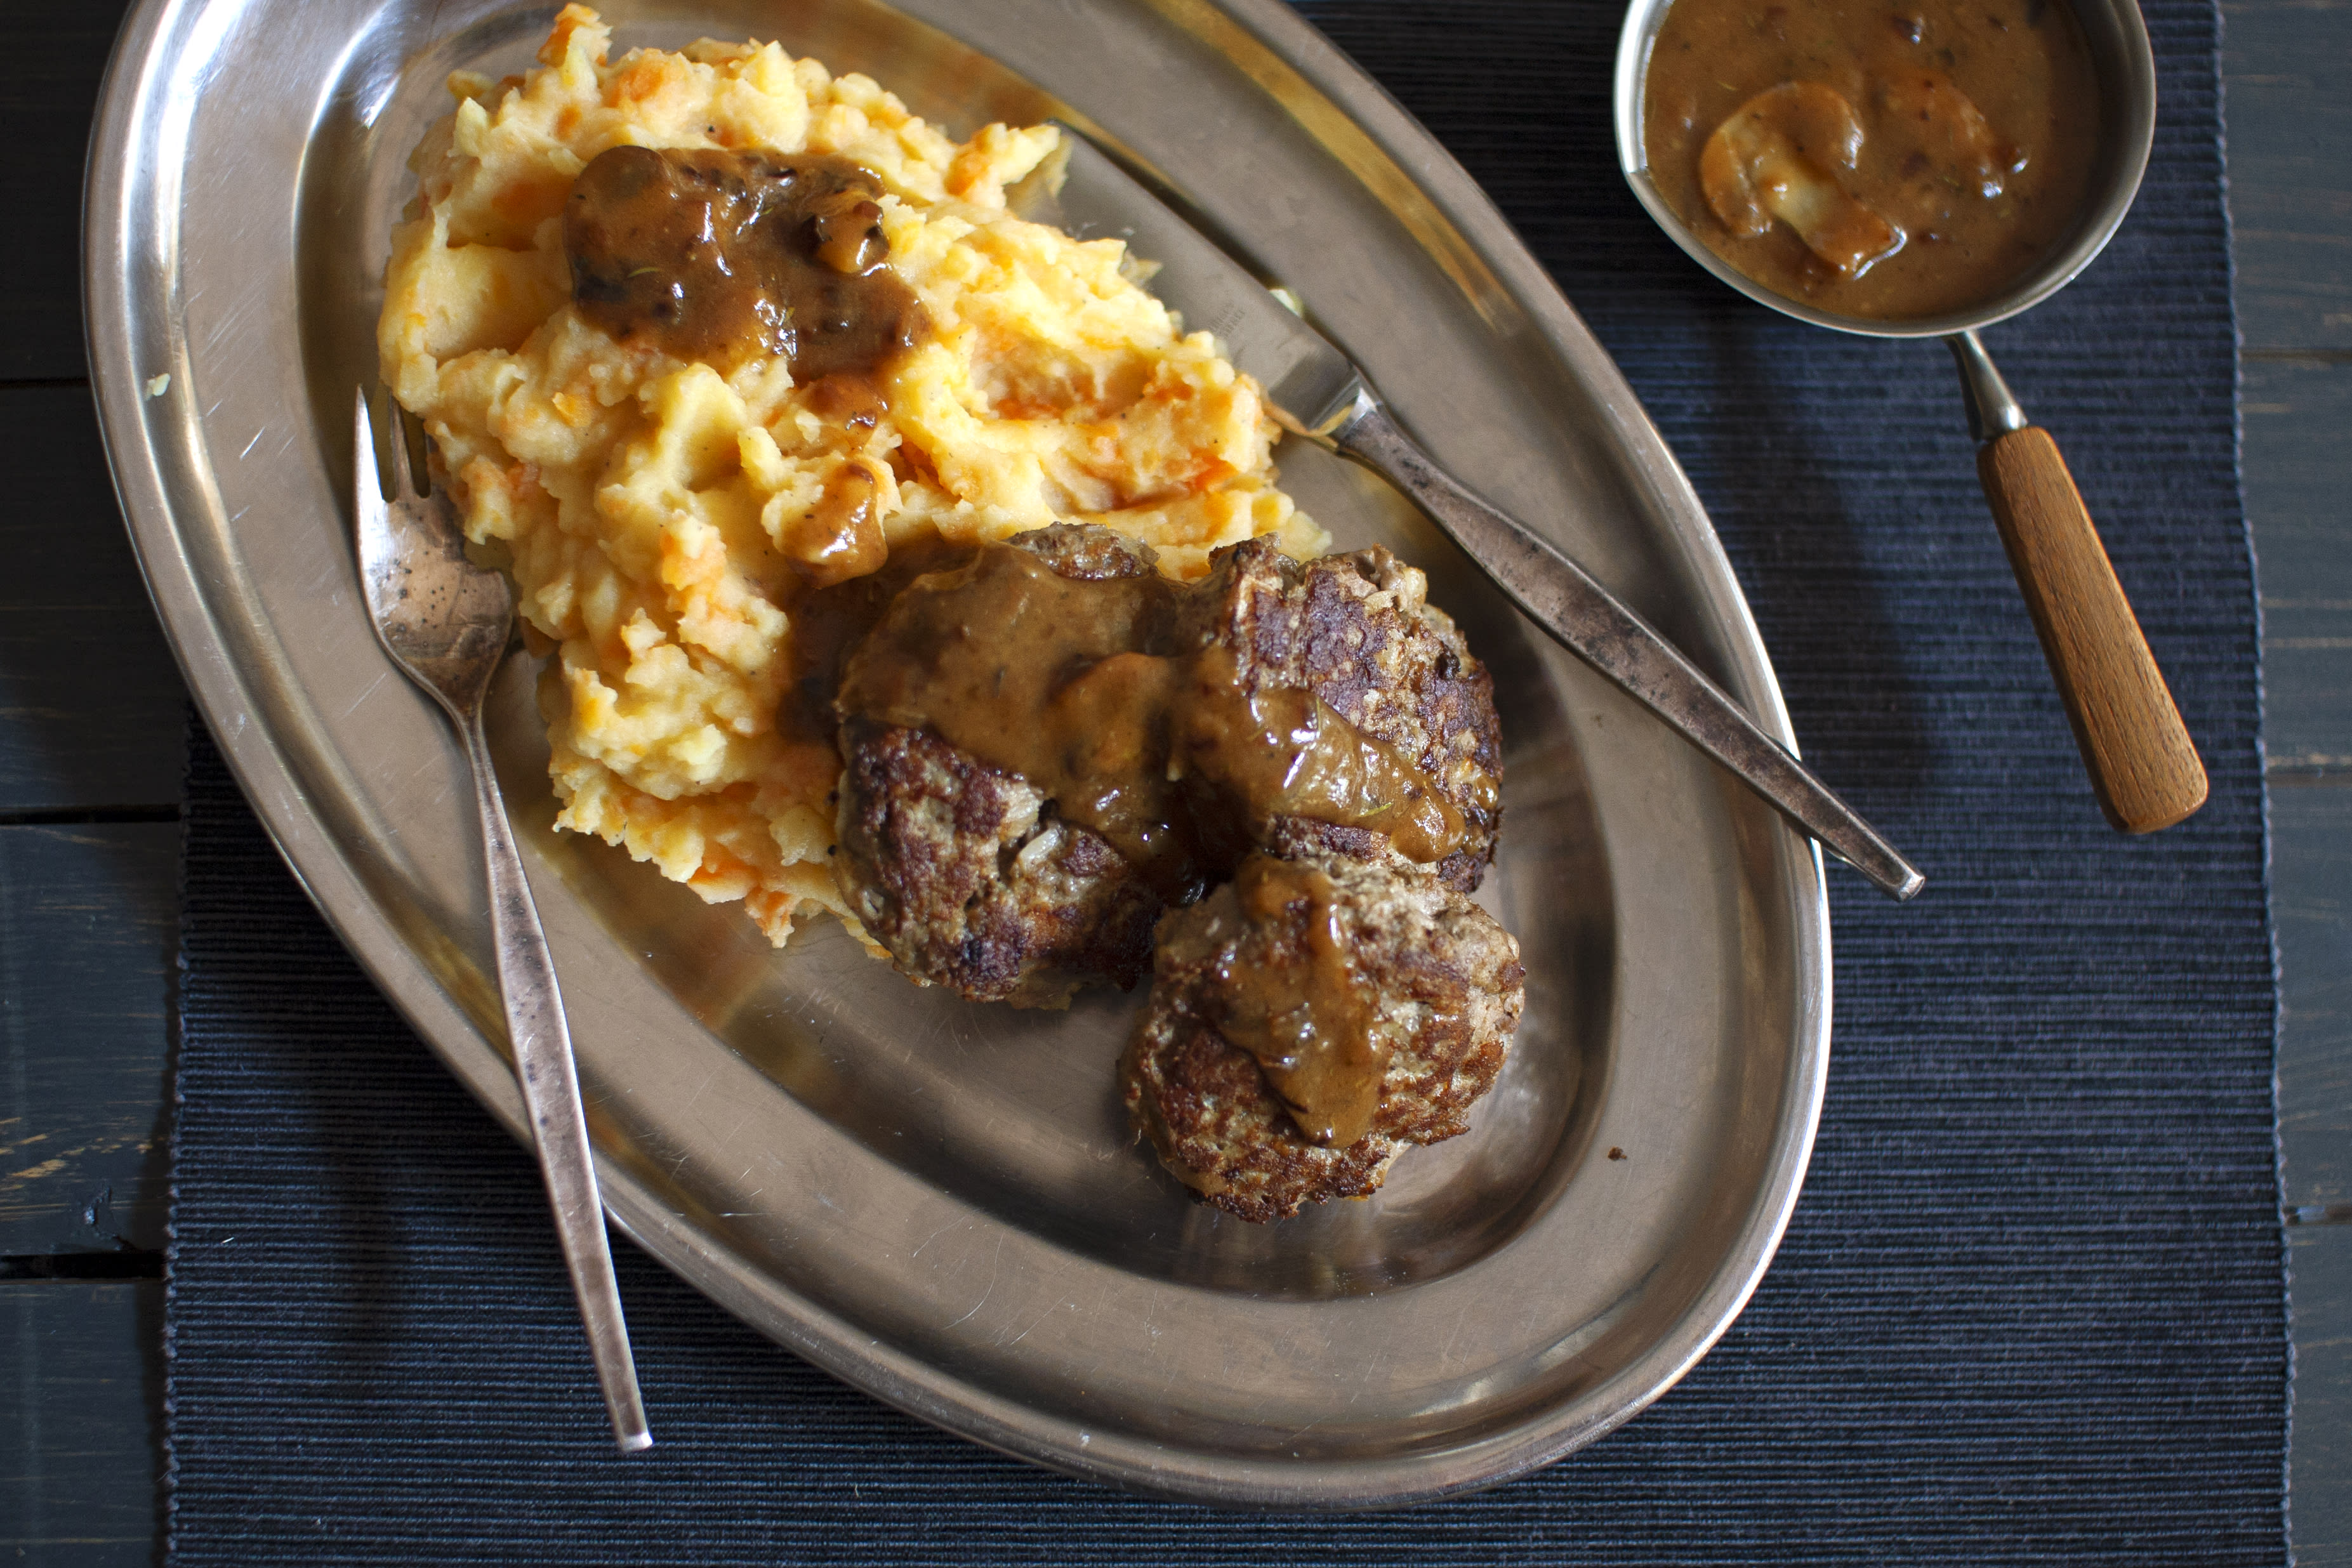 Beef Patties with Carrot and Potato Mash topped with Mushroom Gravy